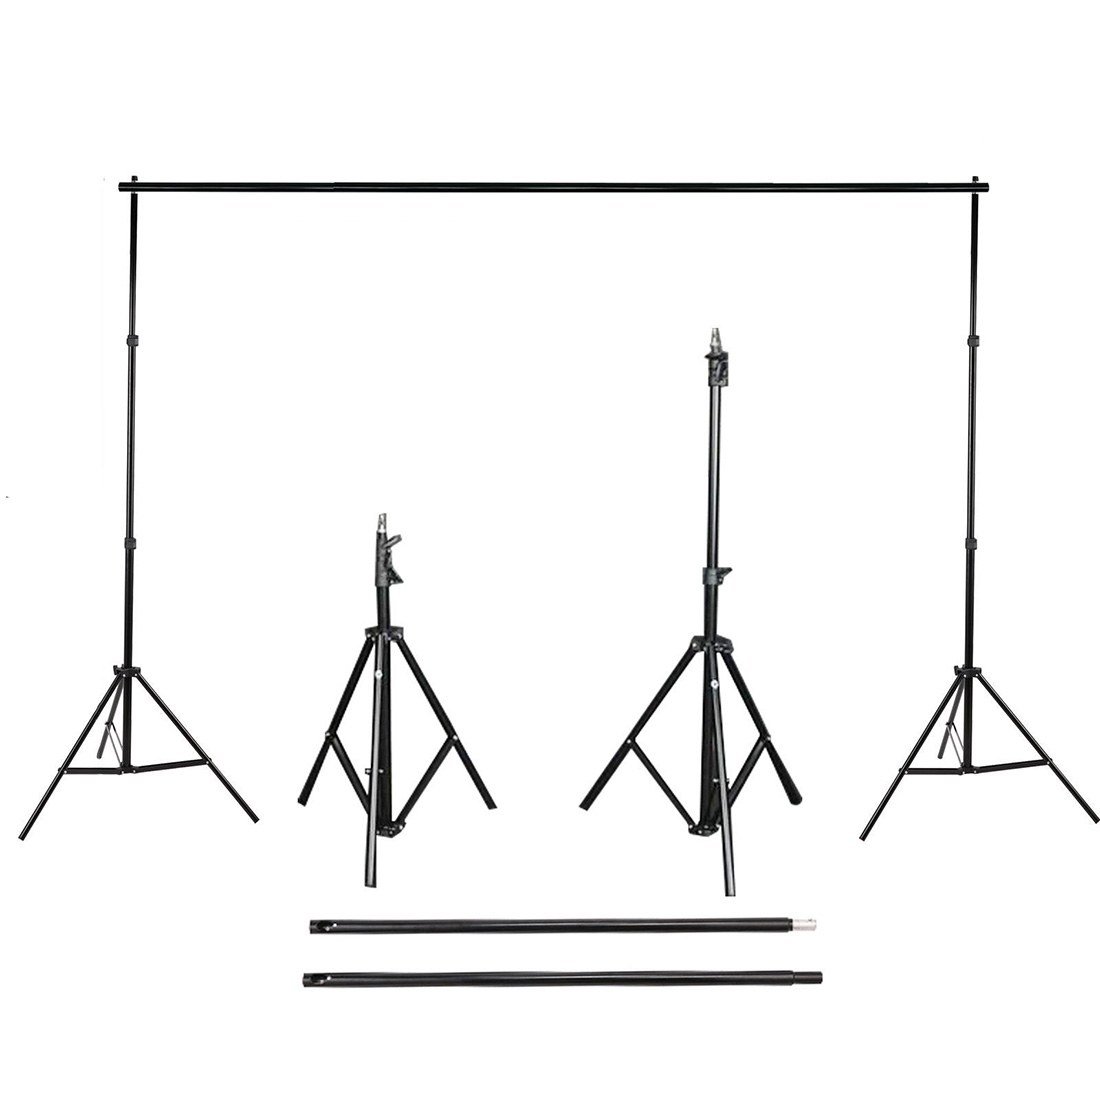 Top Deals 2.8m x 3m Photo Studio Background Backdrop Support Stand Kit + Free Carry Bag